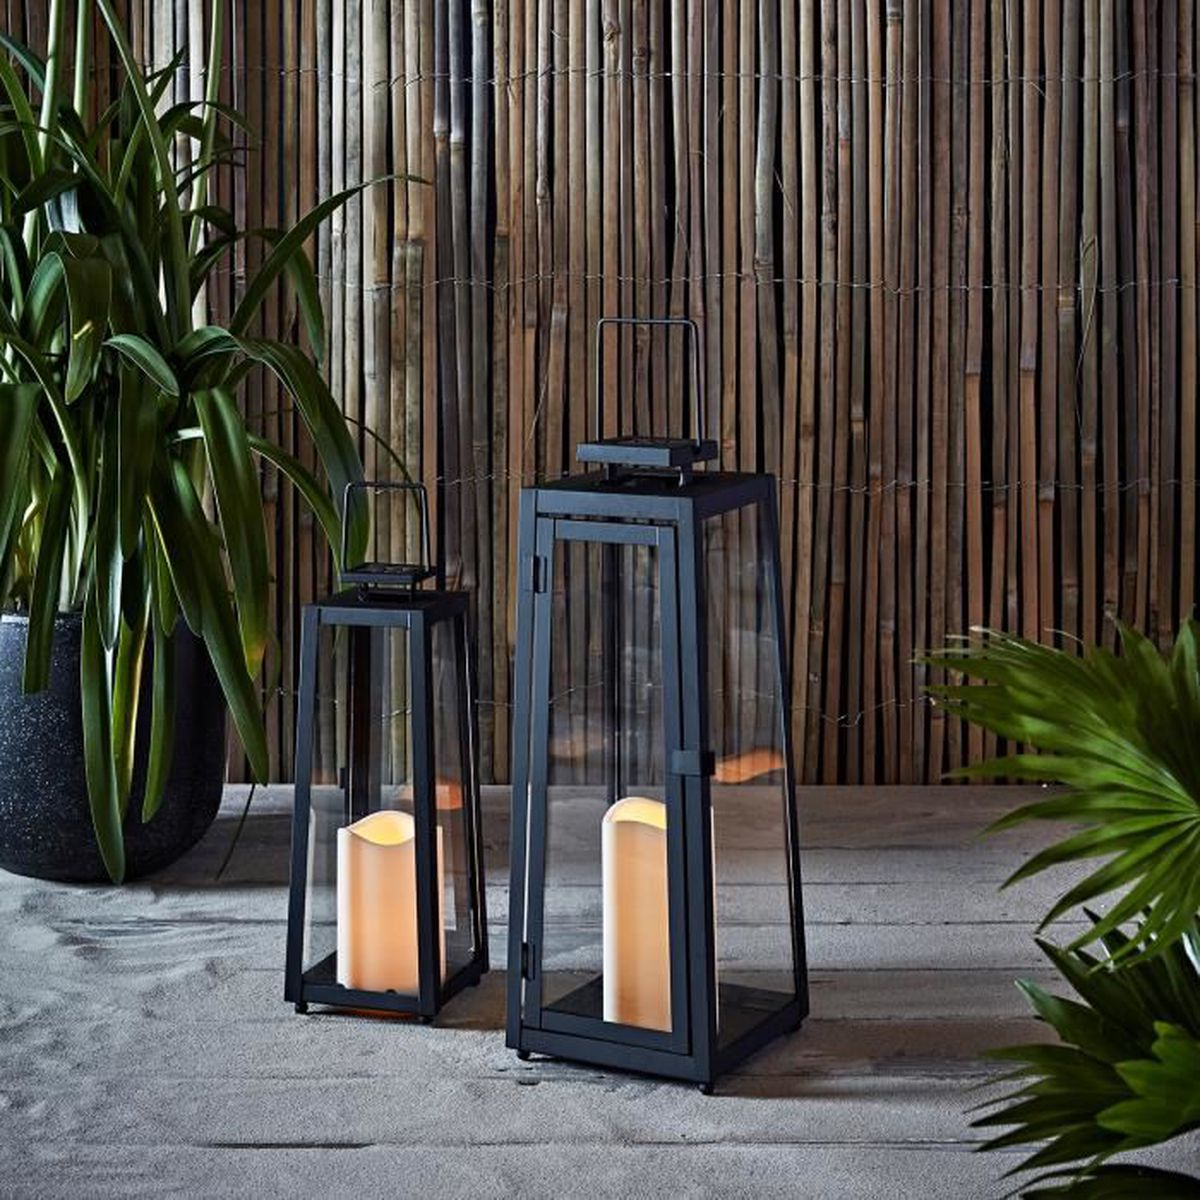 lot de 2 lanternes solaires en m tal noir avec bougies led. Black Bedroom Furniture Sets. Home Design Ideas